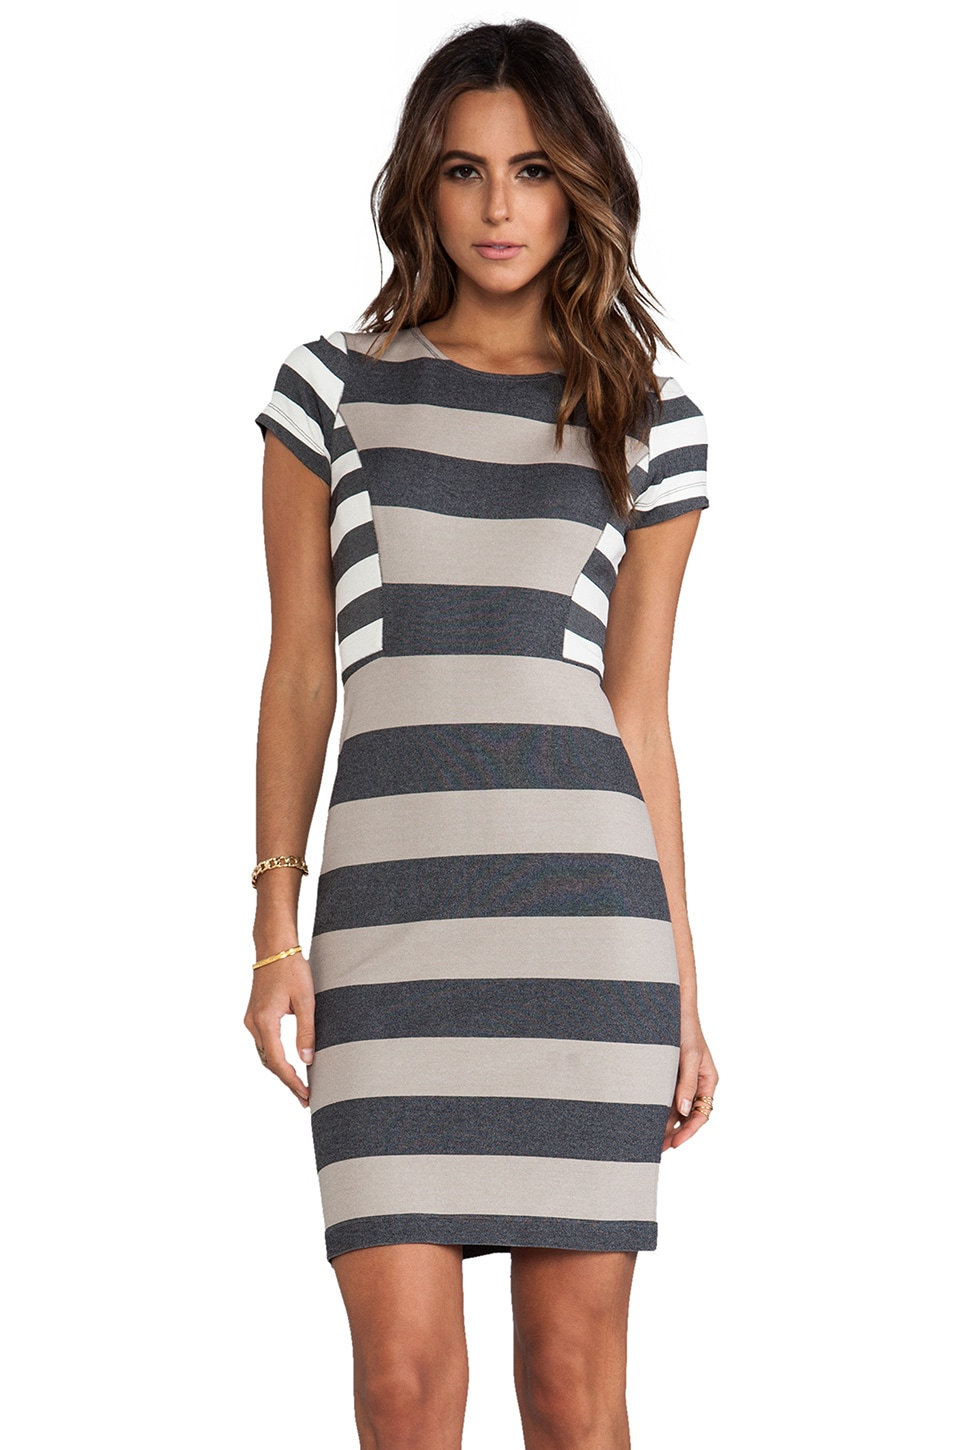 DEREK LAM 10 CROSBY RUNWAY Short Sleeve Dress in Combo Stripe